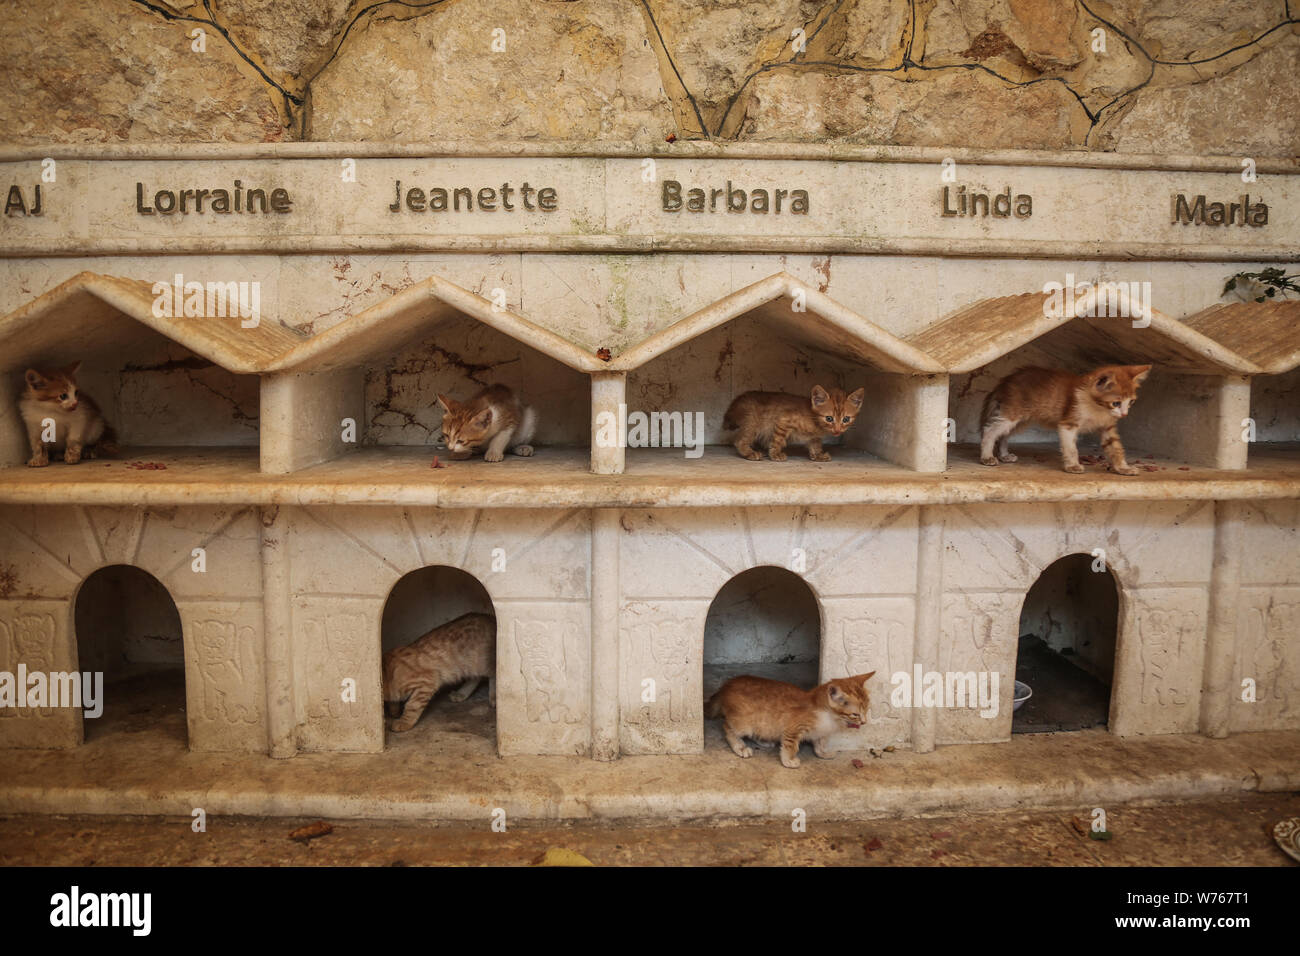 03 August 2019, Syria, Aleppo: Cats are seen at the shelters of the Ernesto's Cat Sanctuary, runned by Mohammed Alaa al-Jaleel, also known as 'the cat man of Aleppo'. During the Syrian war in 2012, Al-Jaleel was working as an ambulance driver in Aleppo, he used to drop off food for stray and abandoned cats on his way home after work. In 2015, he started to search for living cats in the war devastated areas and take them home, later in the year his compassionate work with cats gone viral and with the help of an Italian cat lover called Alessandra Abidin, he started to raise funds and receive do Stock Photo